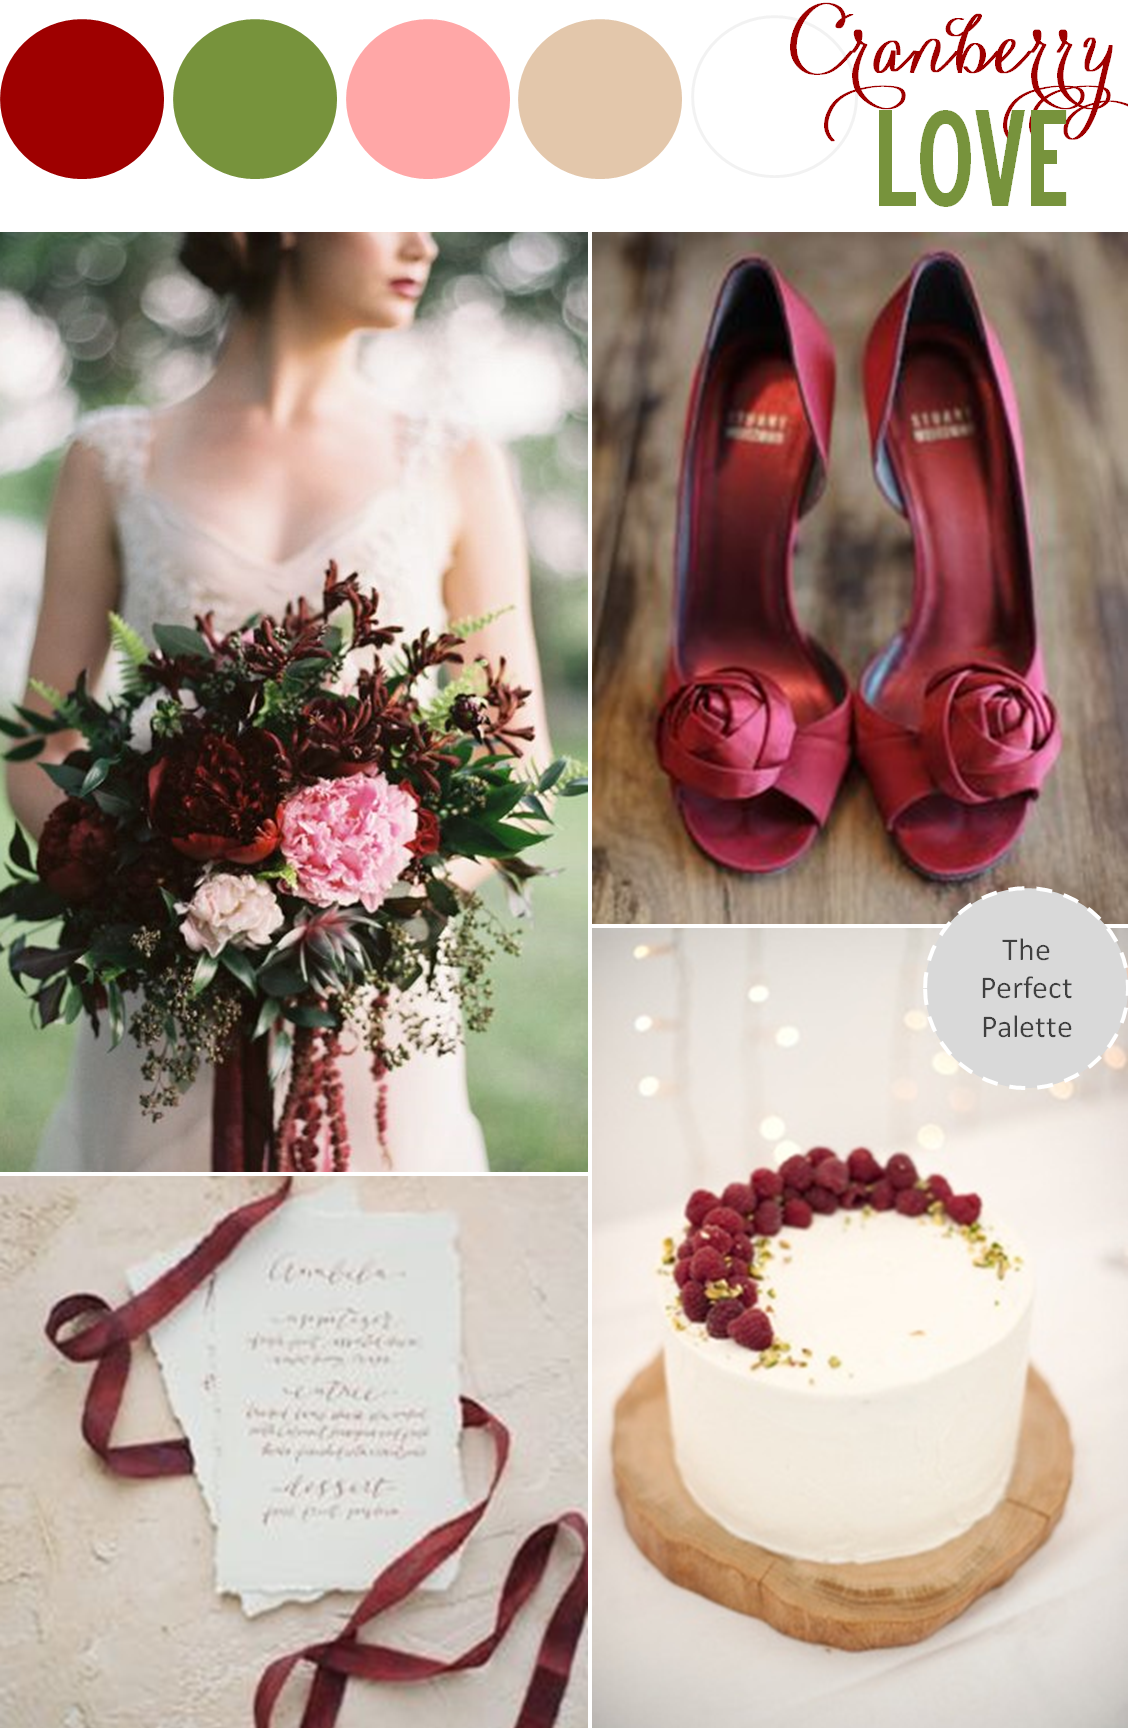 Cranberry Wedding Decor | Cranberry Wedding | Cranberry Wedding Decor | Wedding Decor | Wedding Decor Ideas | Cranberry Wedding Decor Ideas